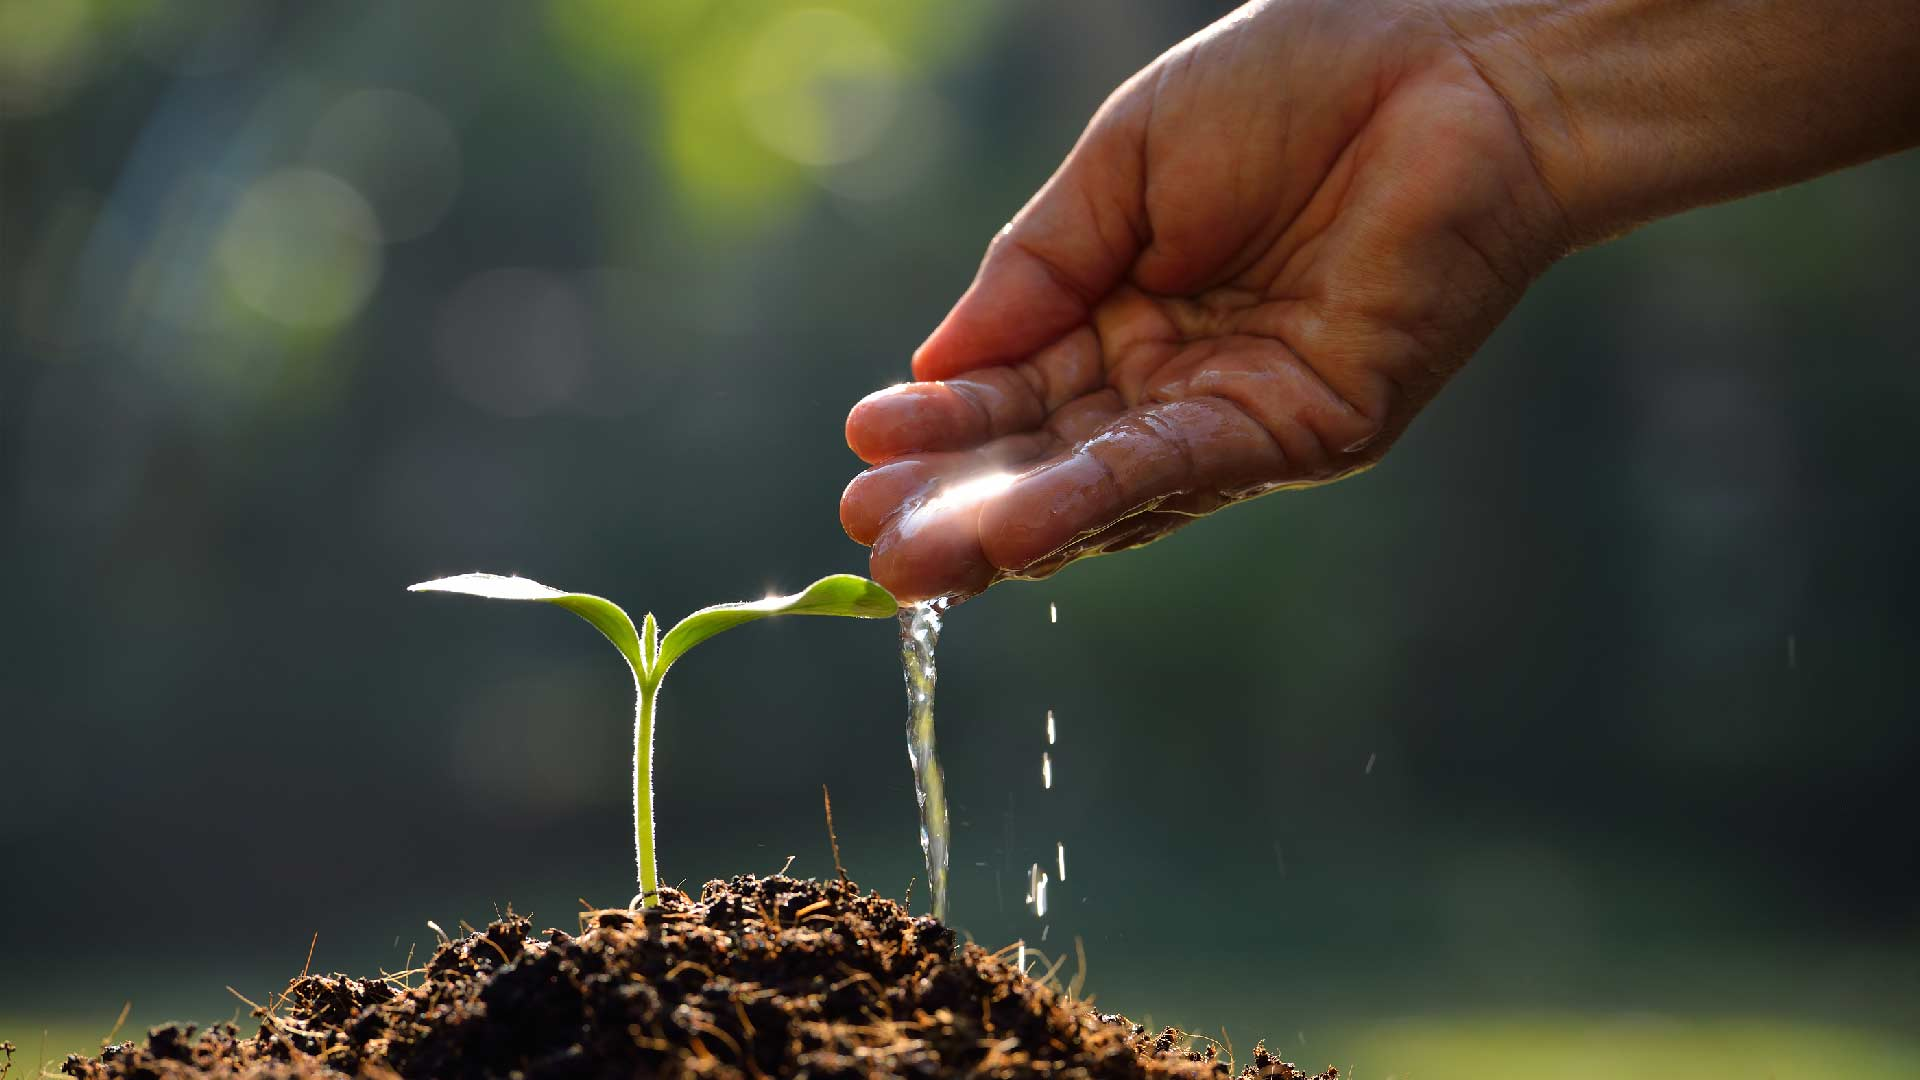 an analysis of the ideal soil for growing plants